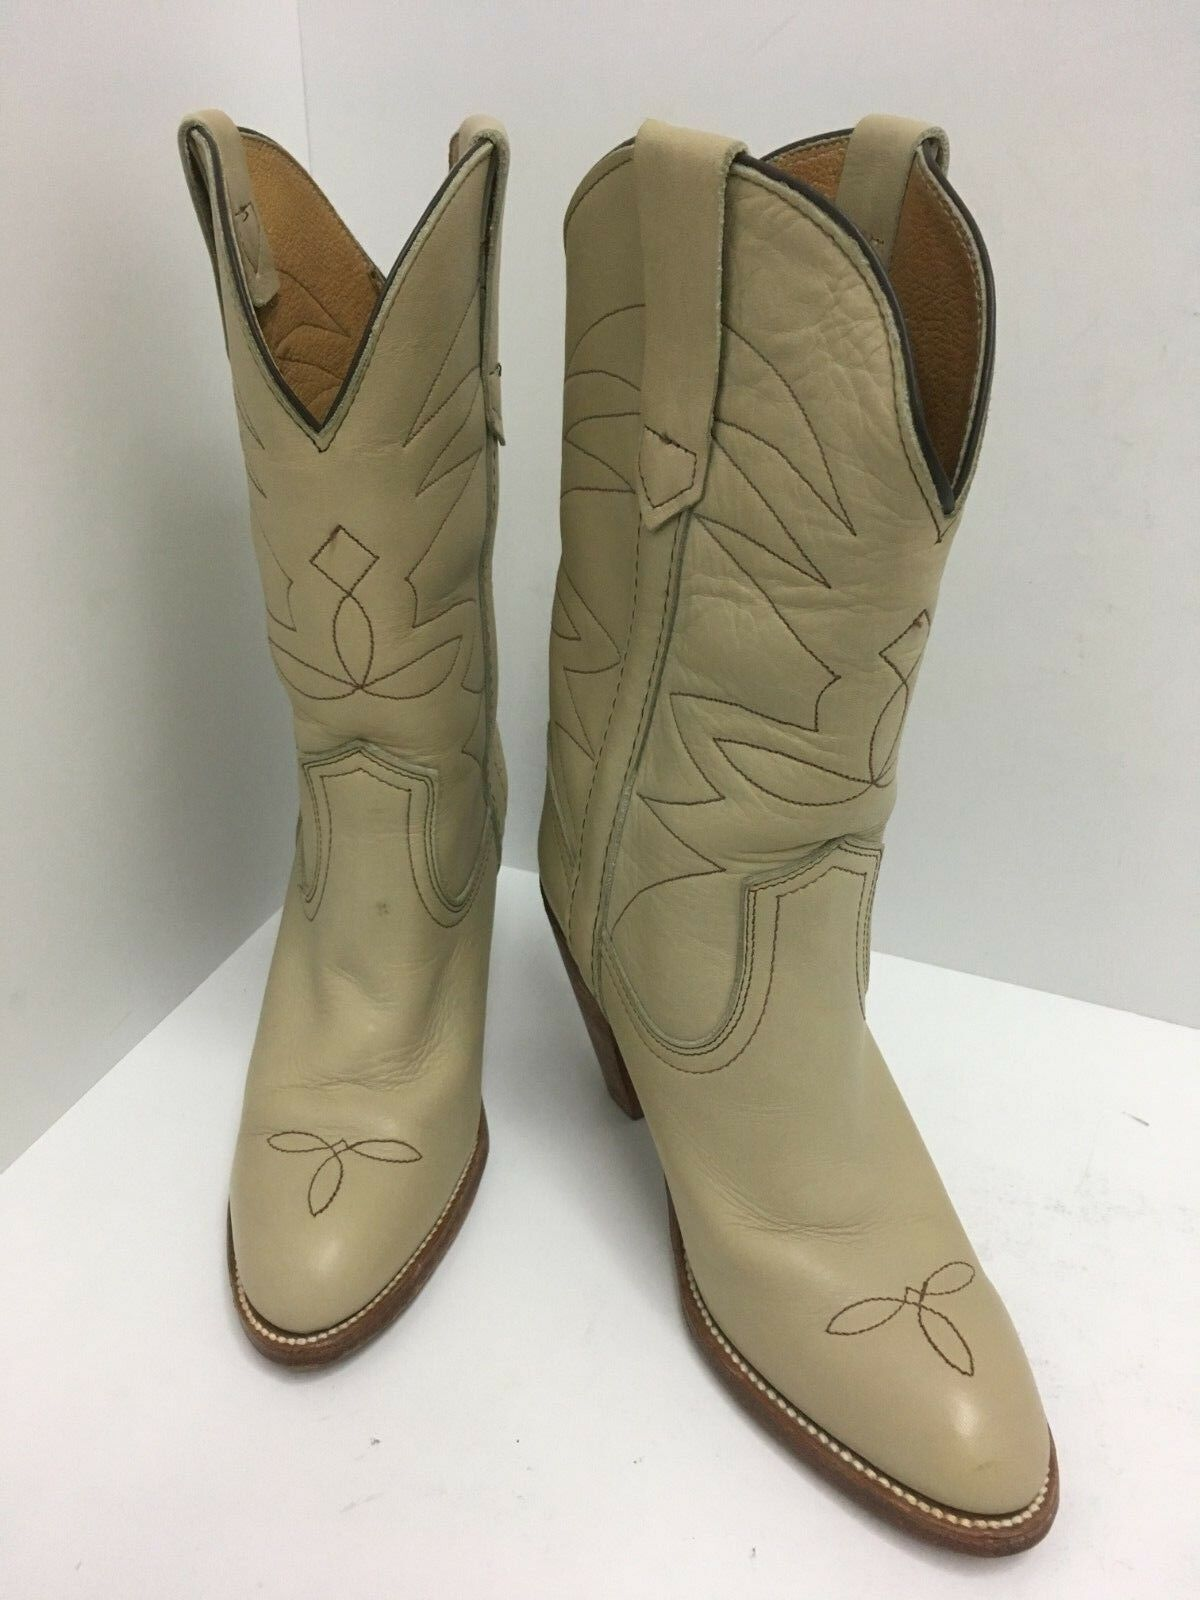 FRYE NUDE Leather Cowboy Western Boots Women's 6.5 B Stacked HIGH Heel 8808 USA